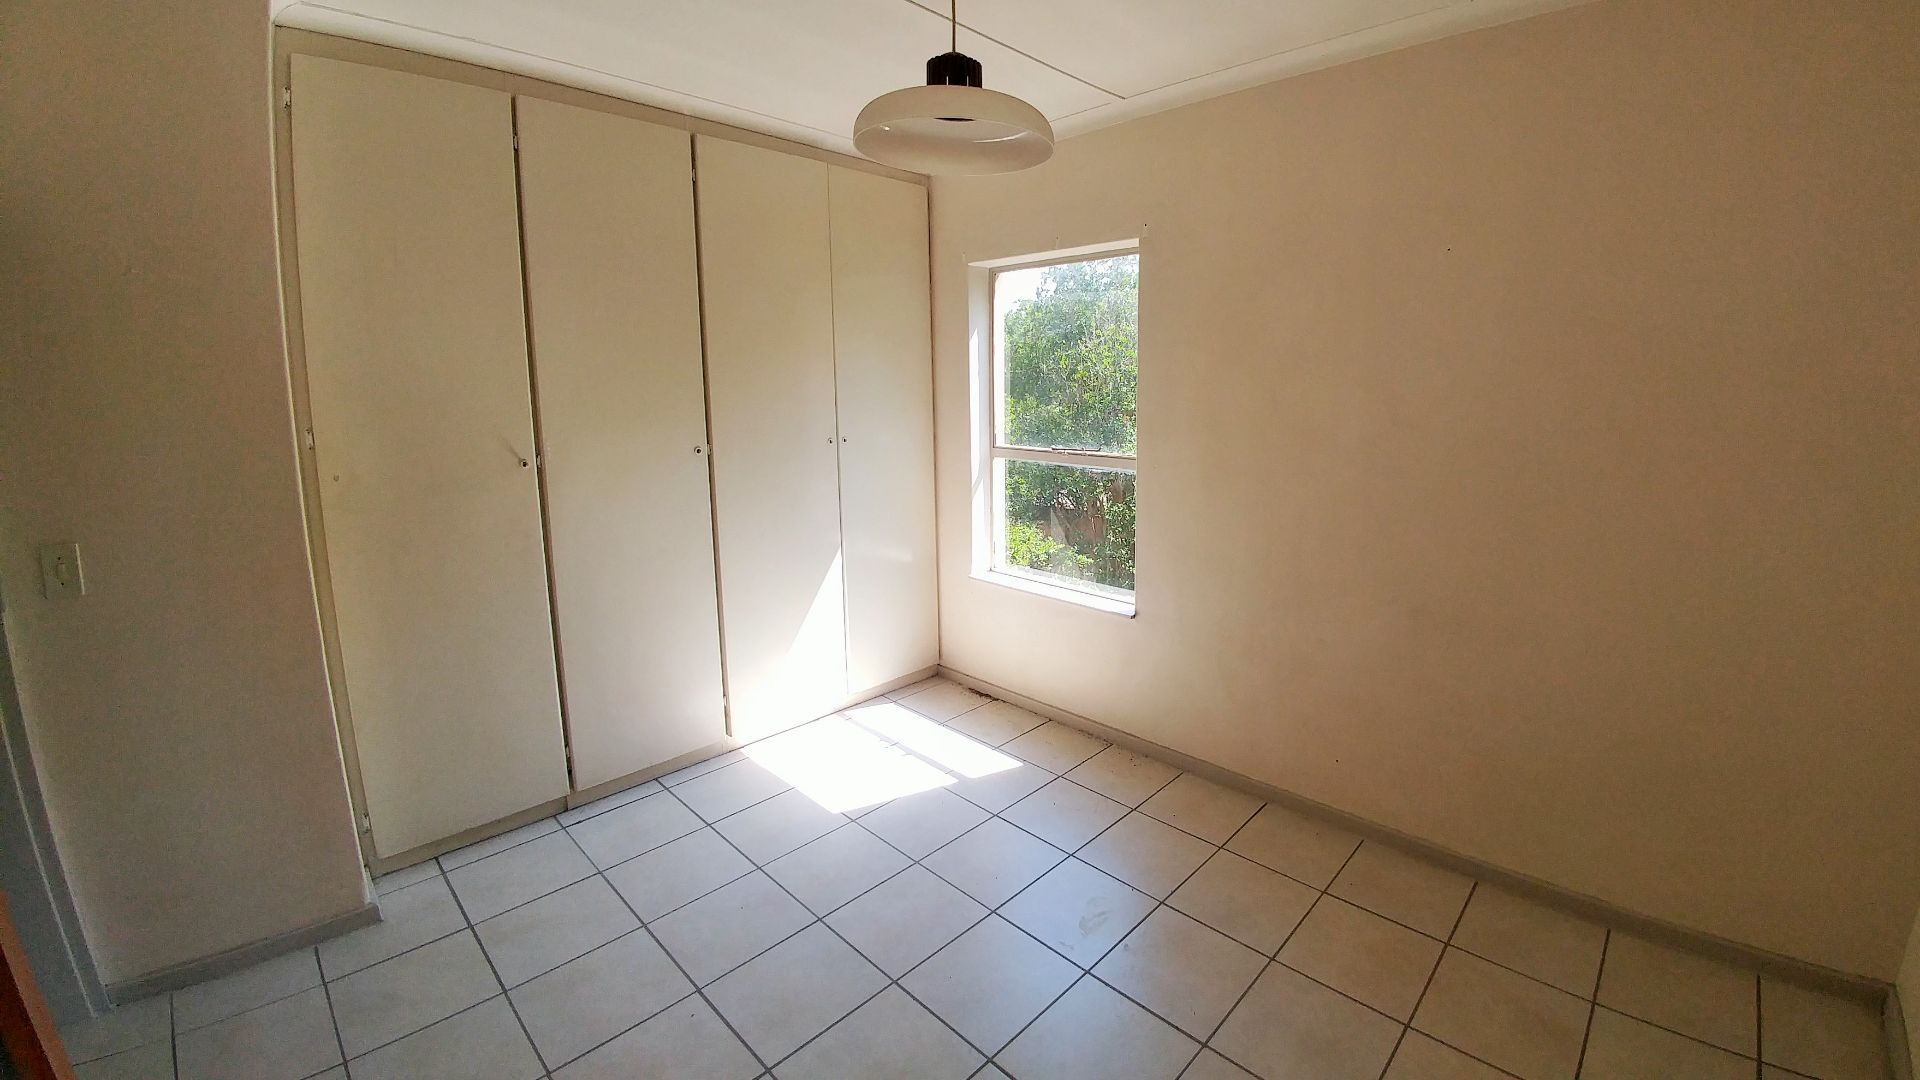 Potchefstroom Central property for sale. Ref No: 13547446. Picture no 17